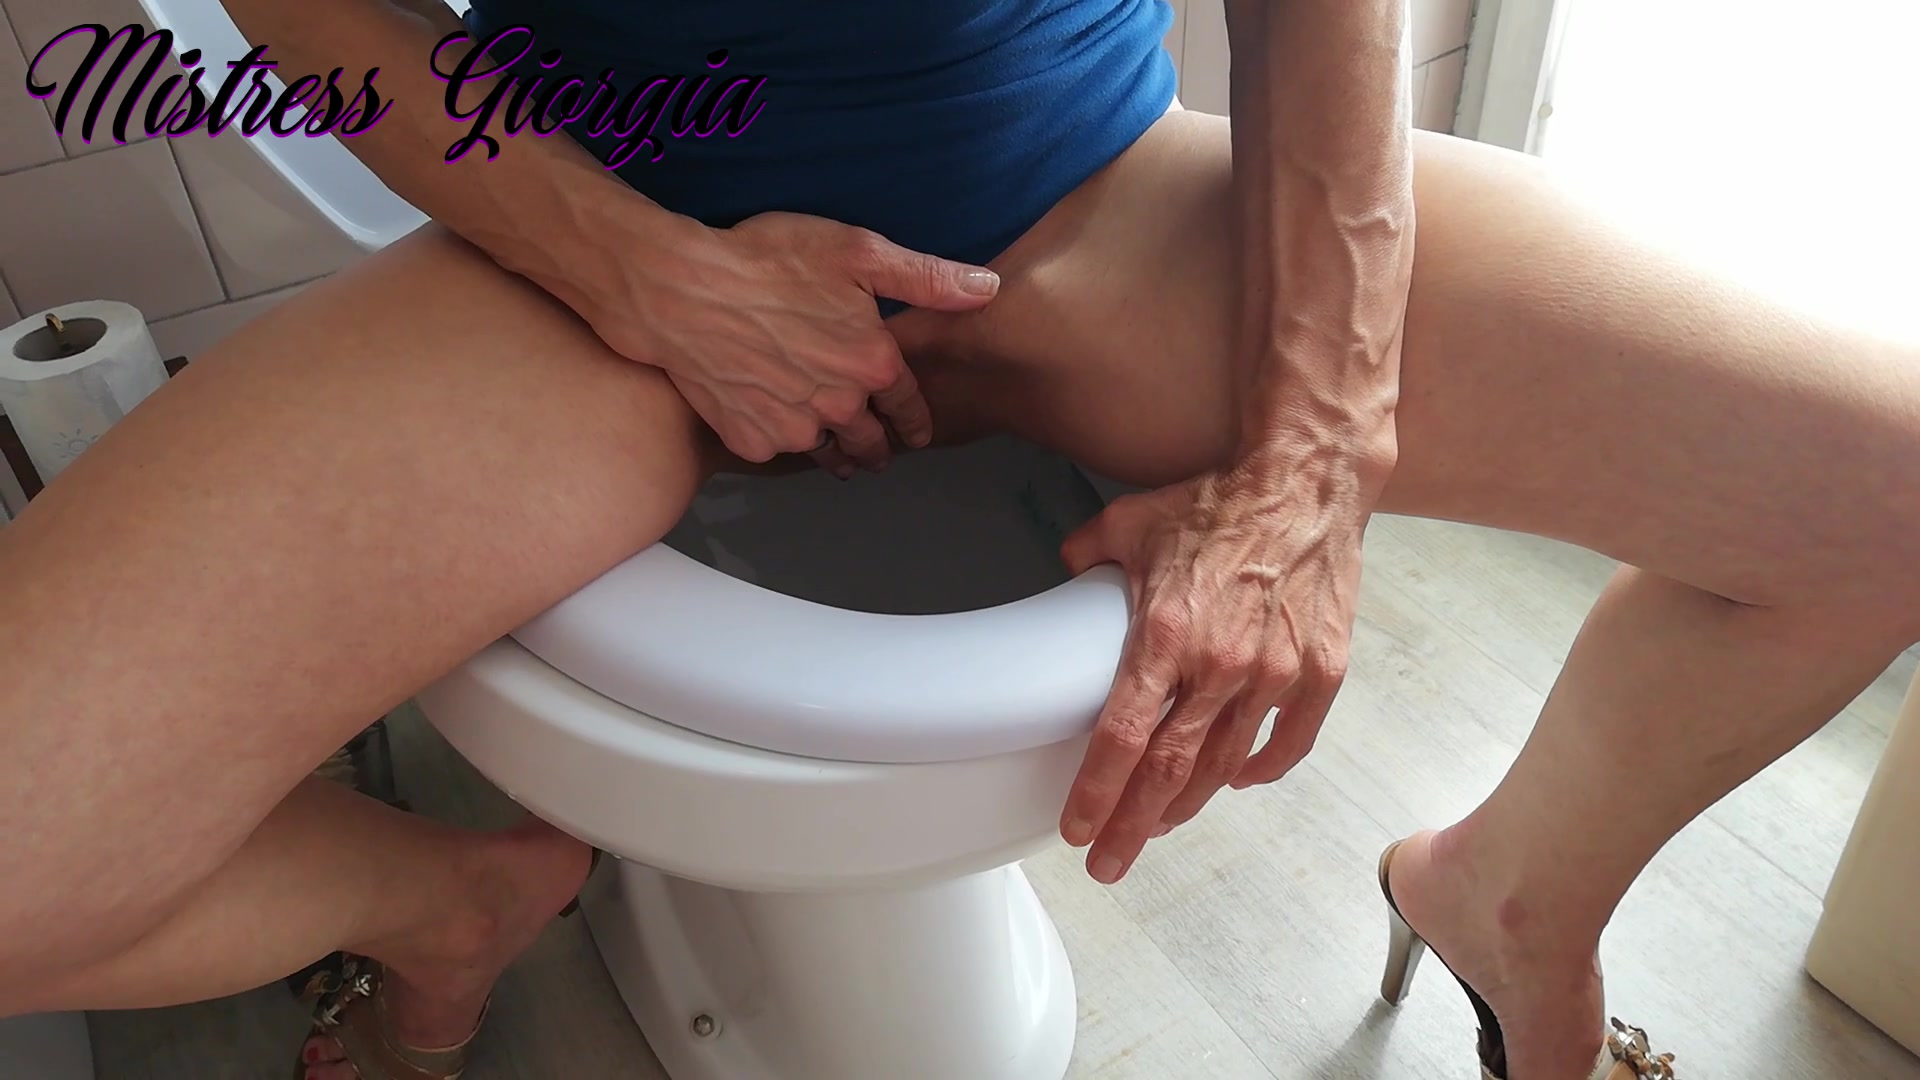 Mistress Giorgia Divina - Toilet paper with the slave